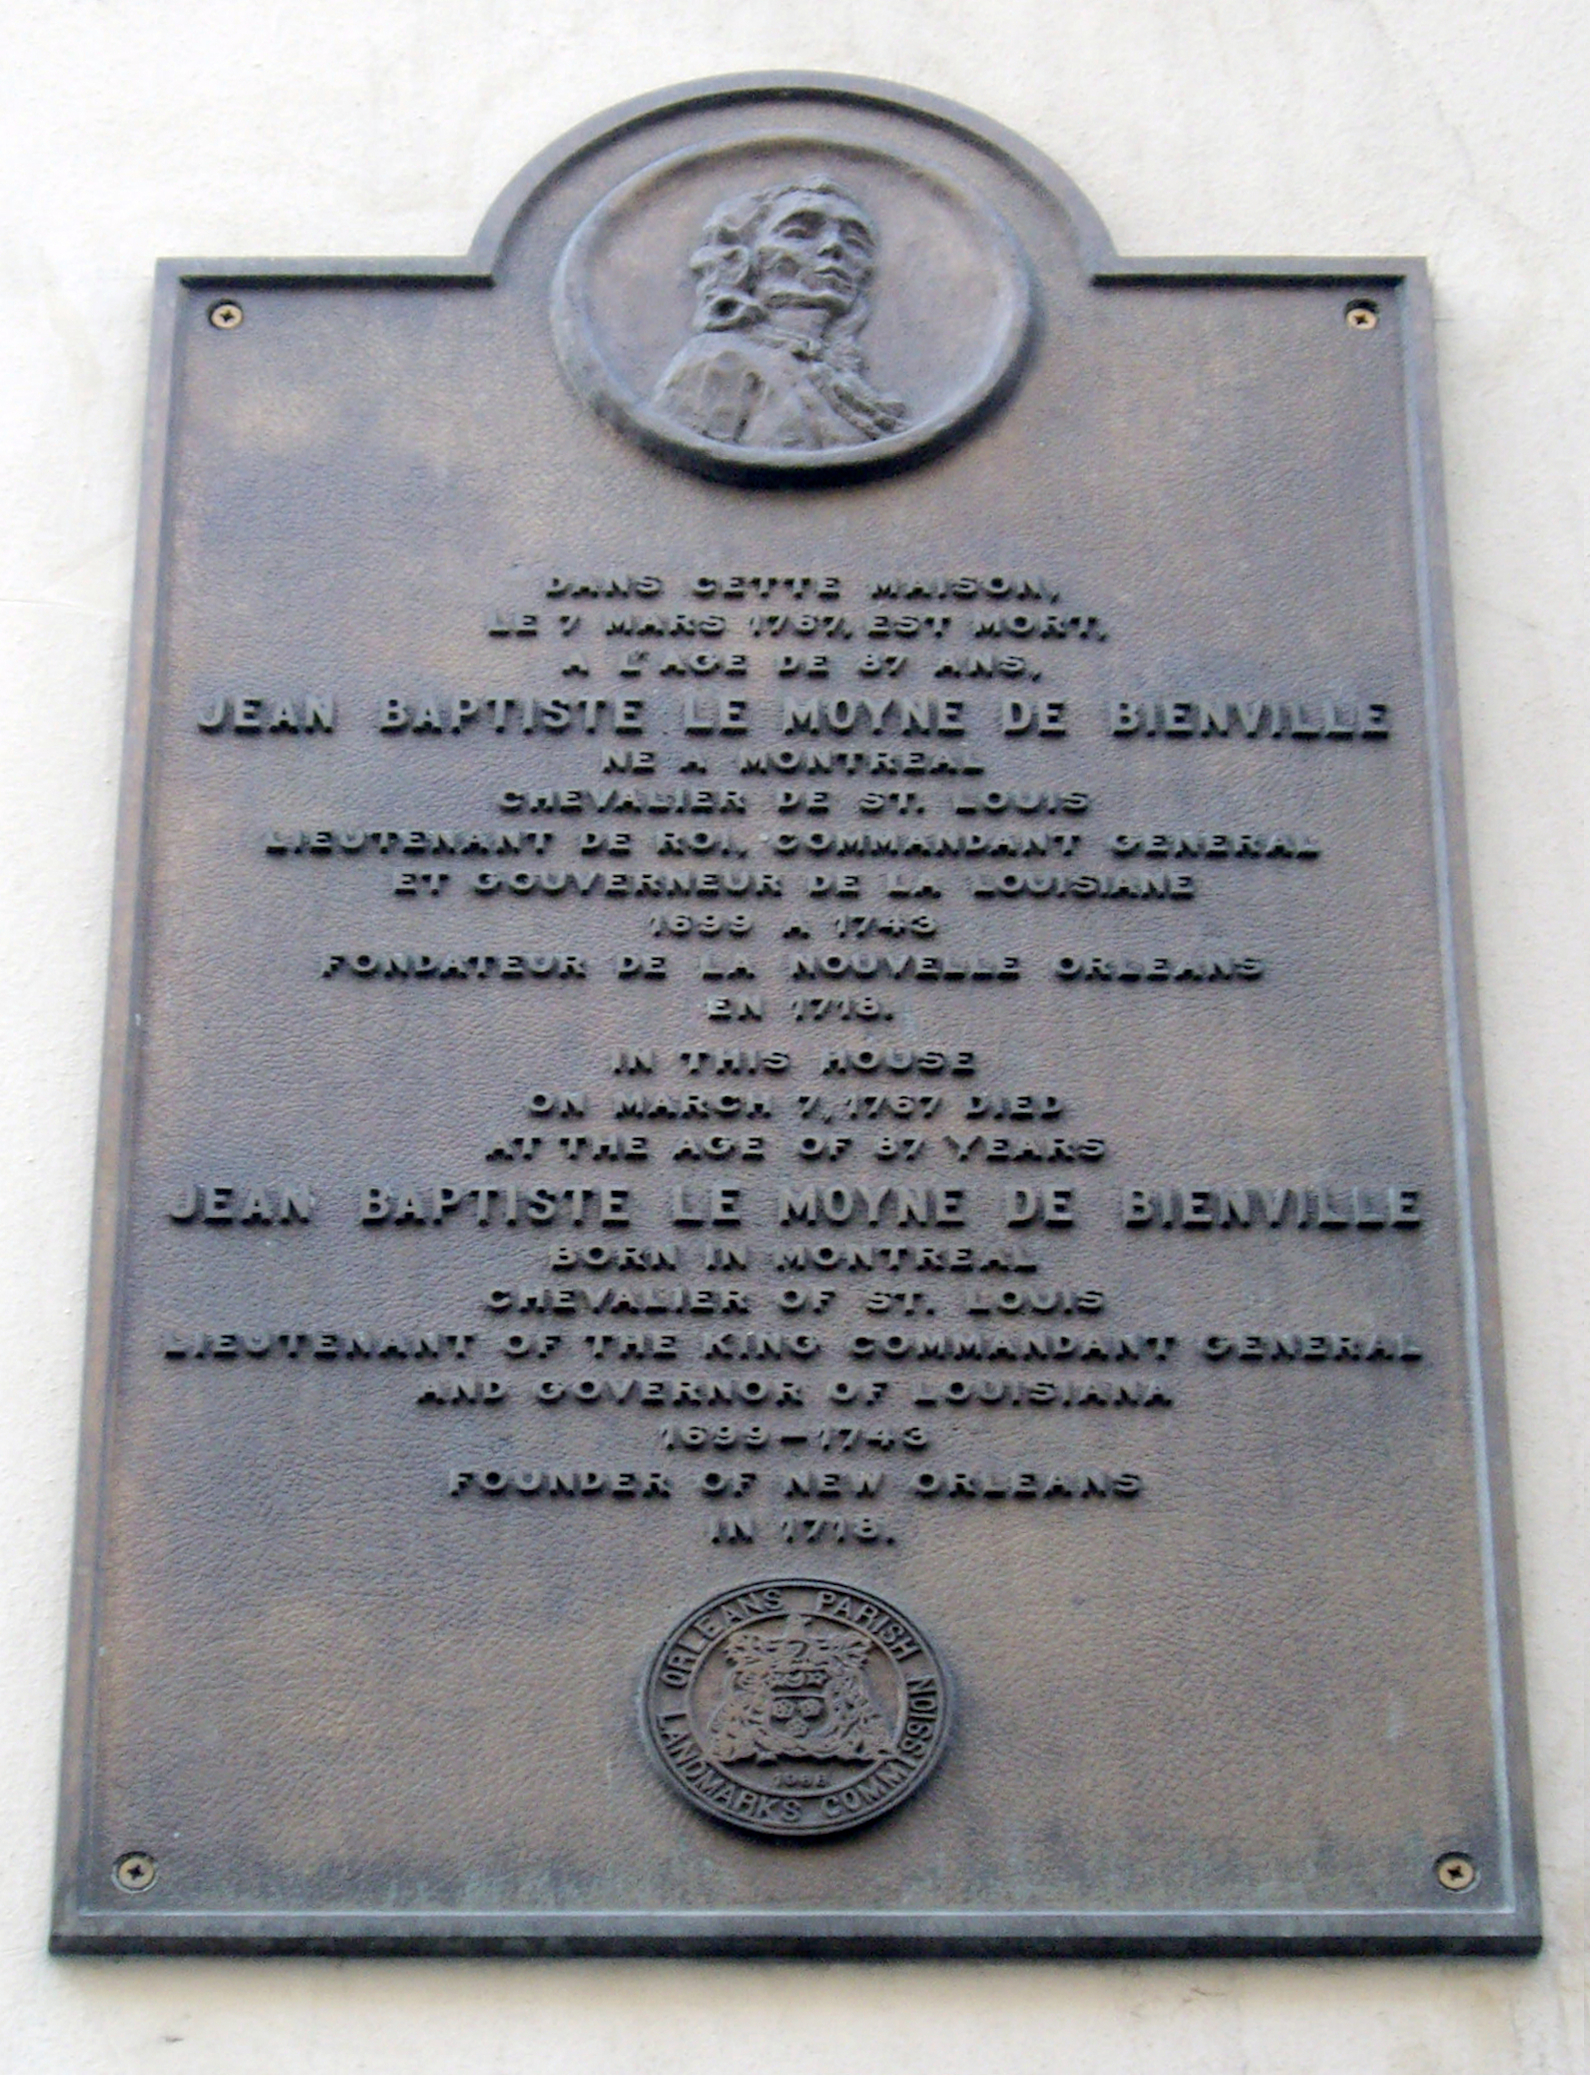 http://upload.wikimedia.org/wikipedia/commons/2/22/Plaque_Le_Moyne_de_Bienville,_17_rue_Vivienne,_Paris_2.jpg